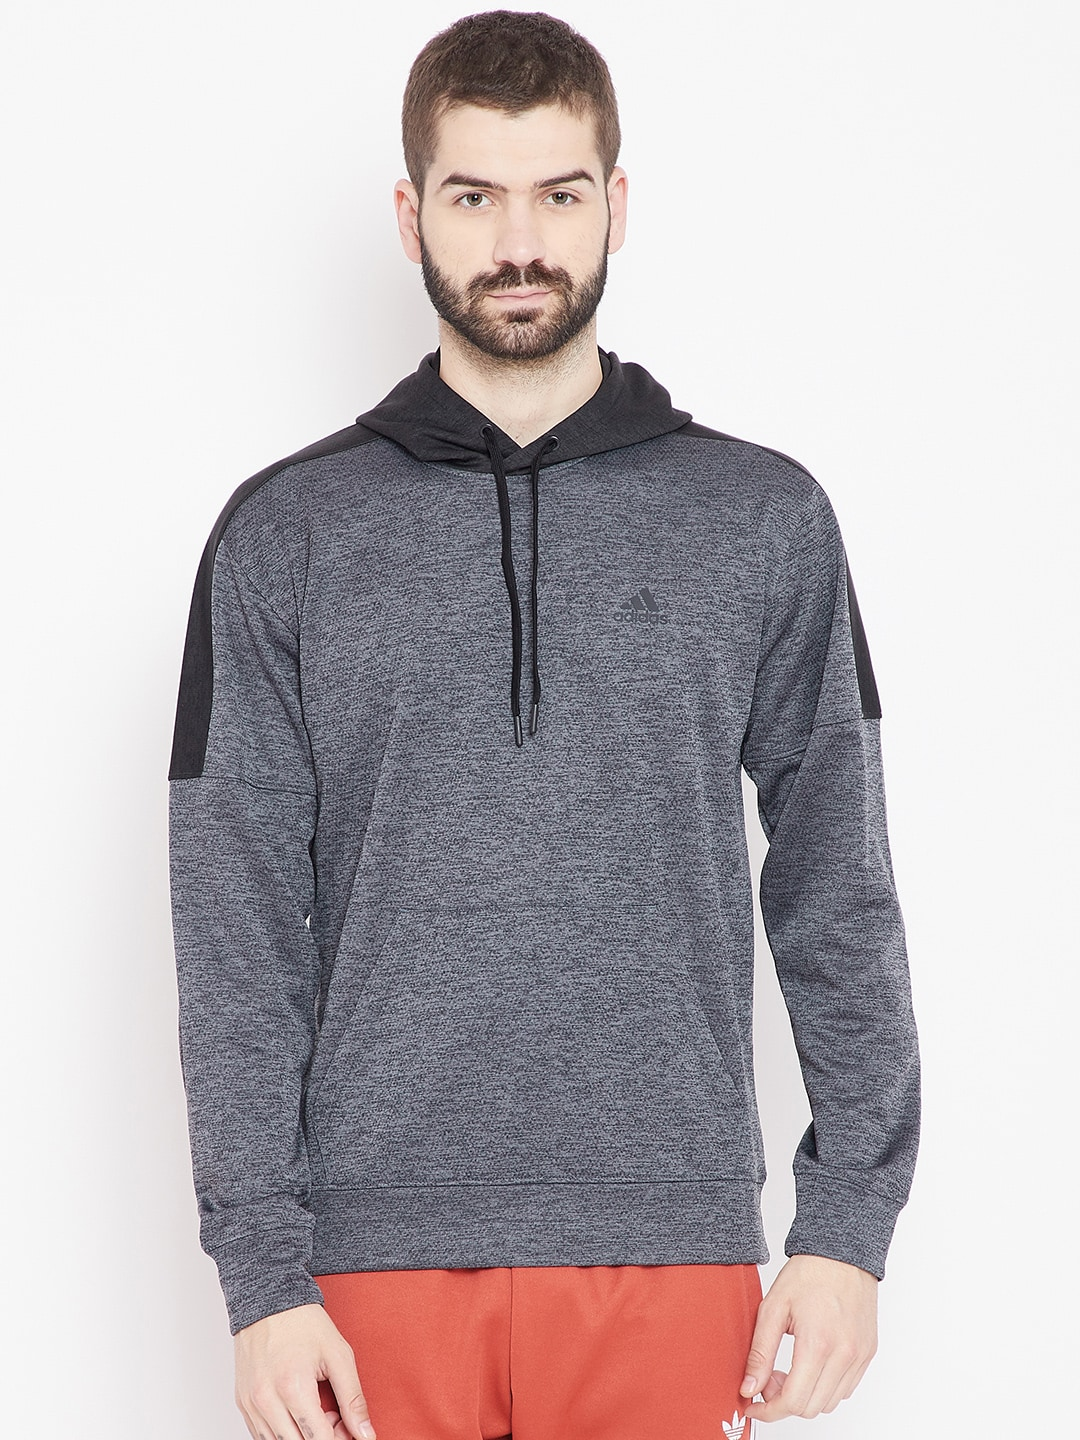 on wholesale nice shoes save up to 80% Adidas Men Charcoal Grey TI FLC PO Hooded Sweatshirt